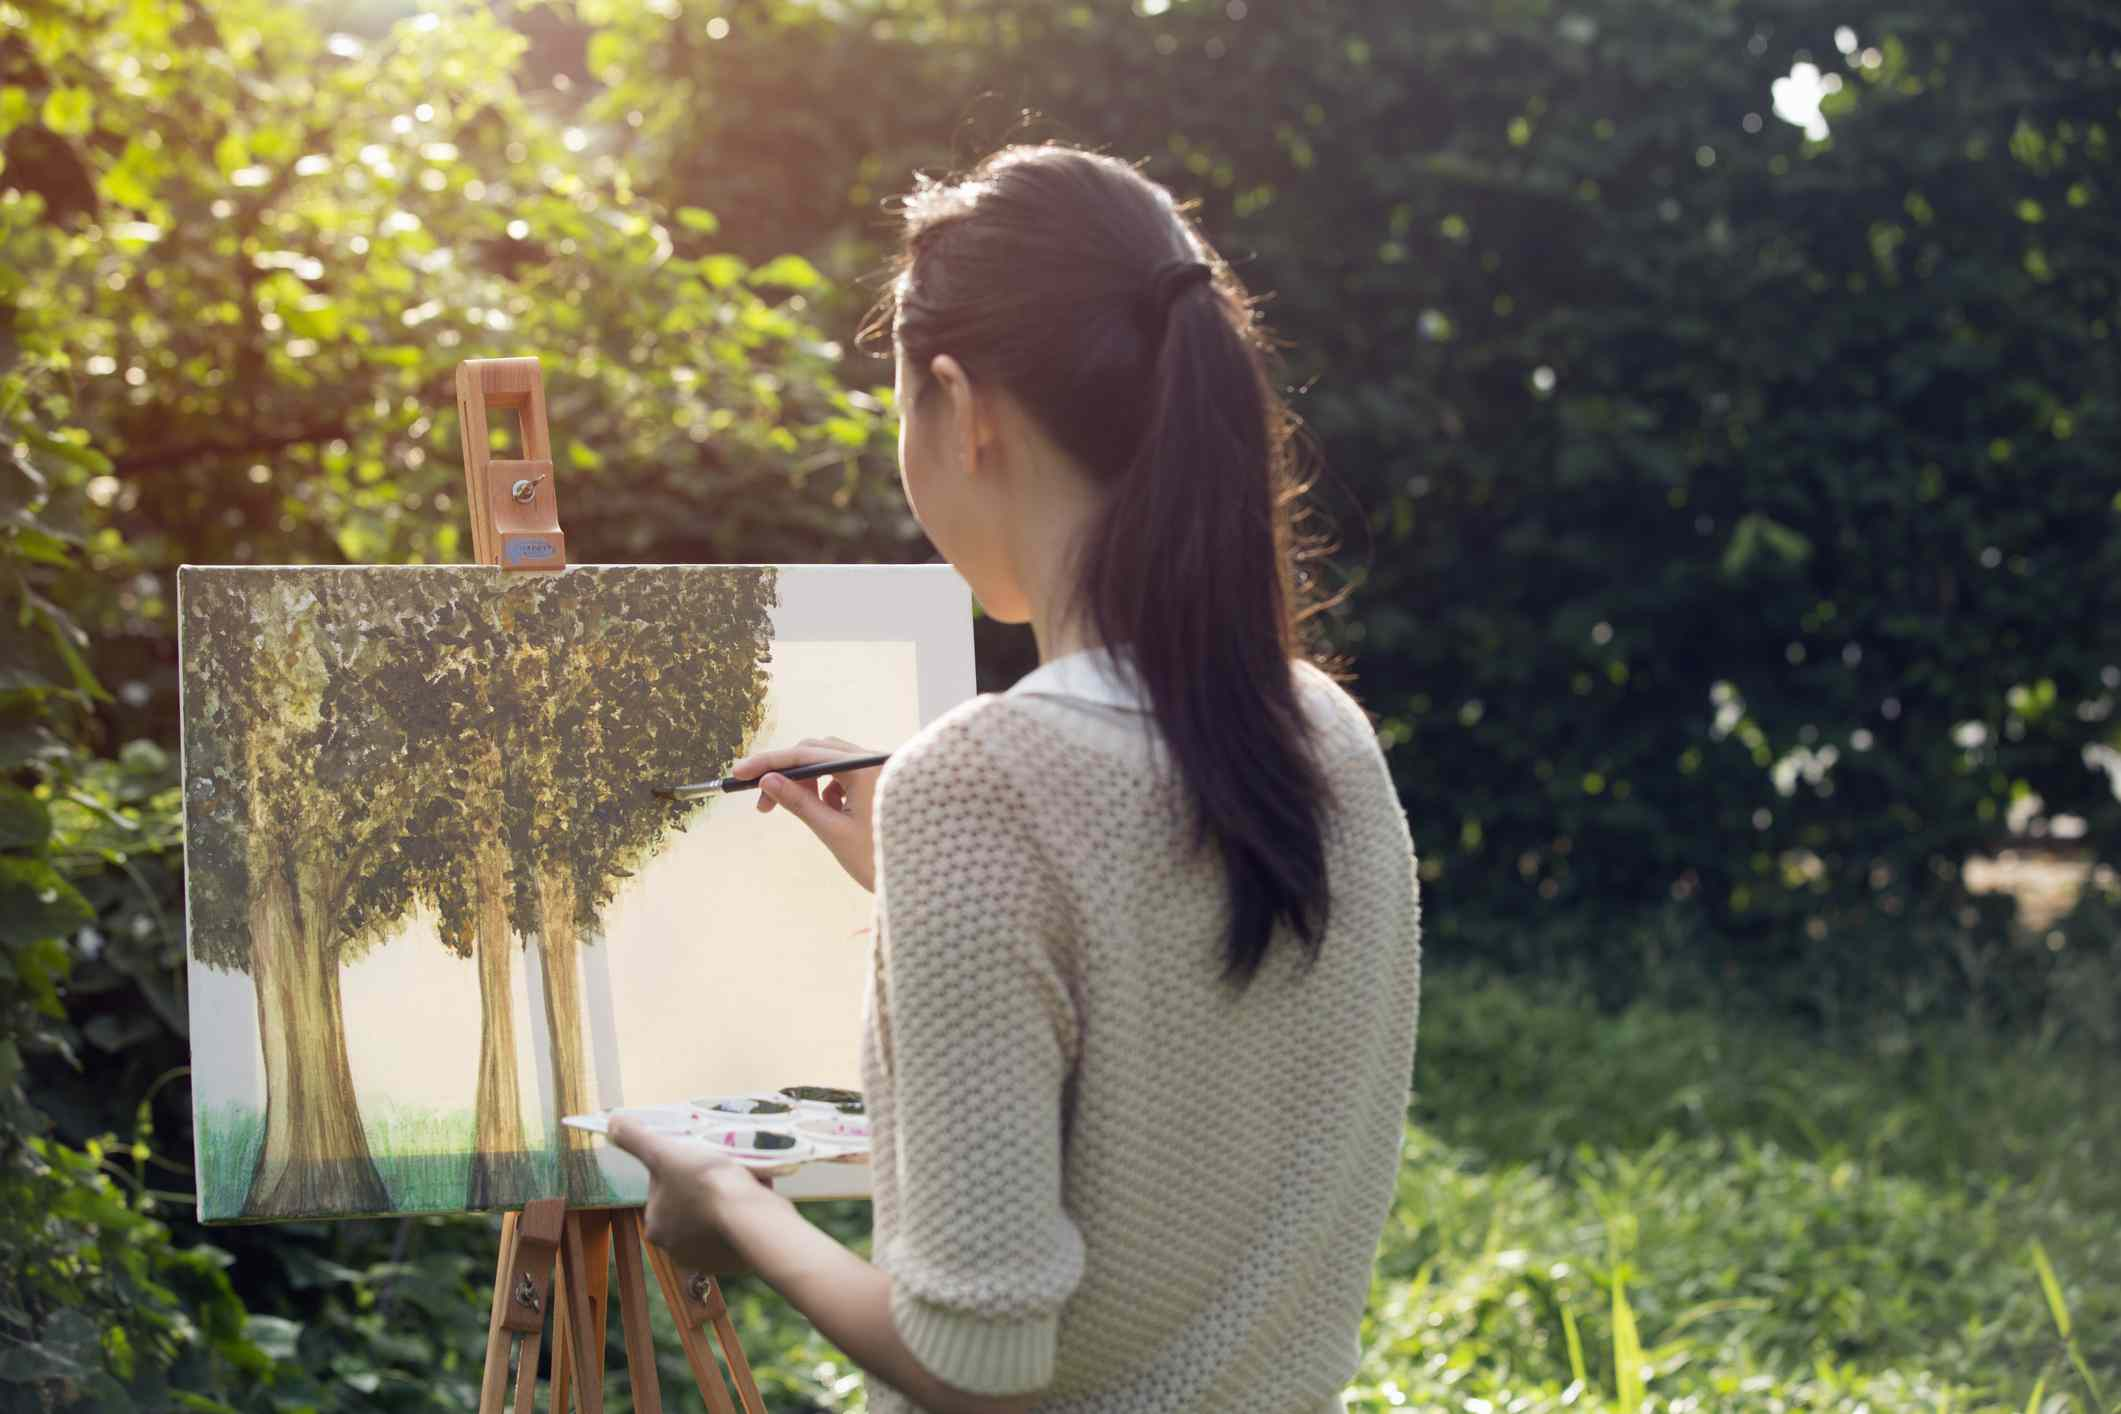 painting in park